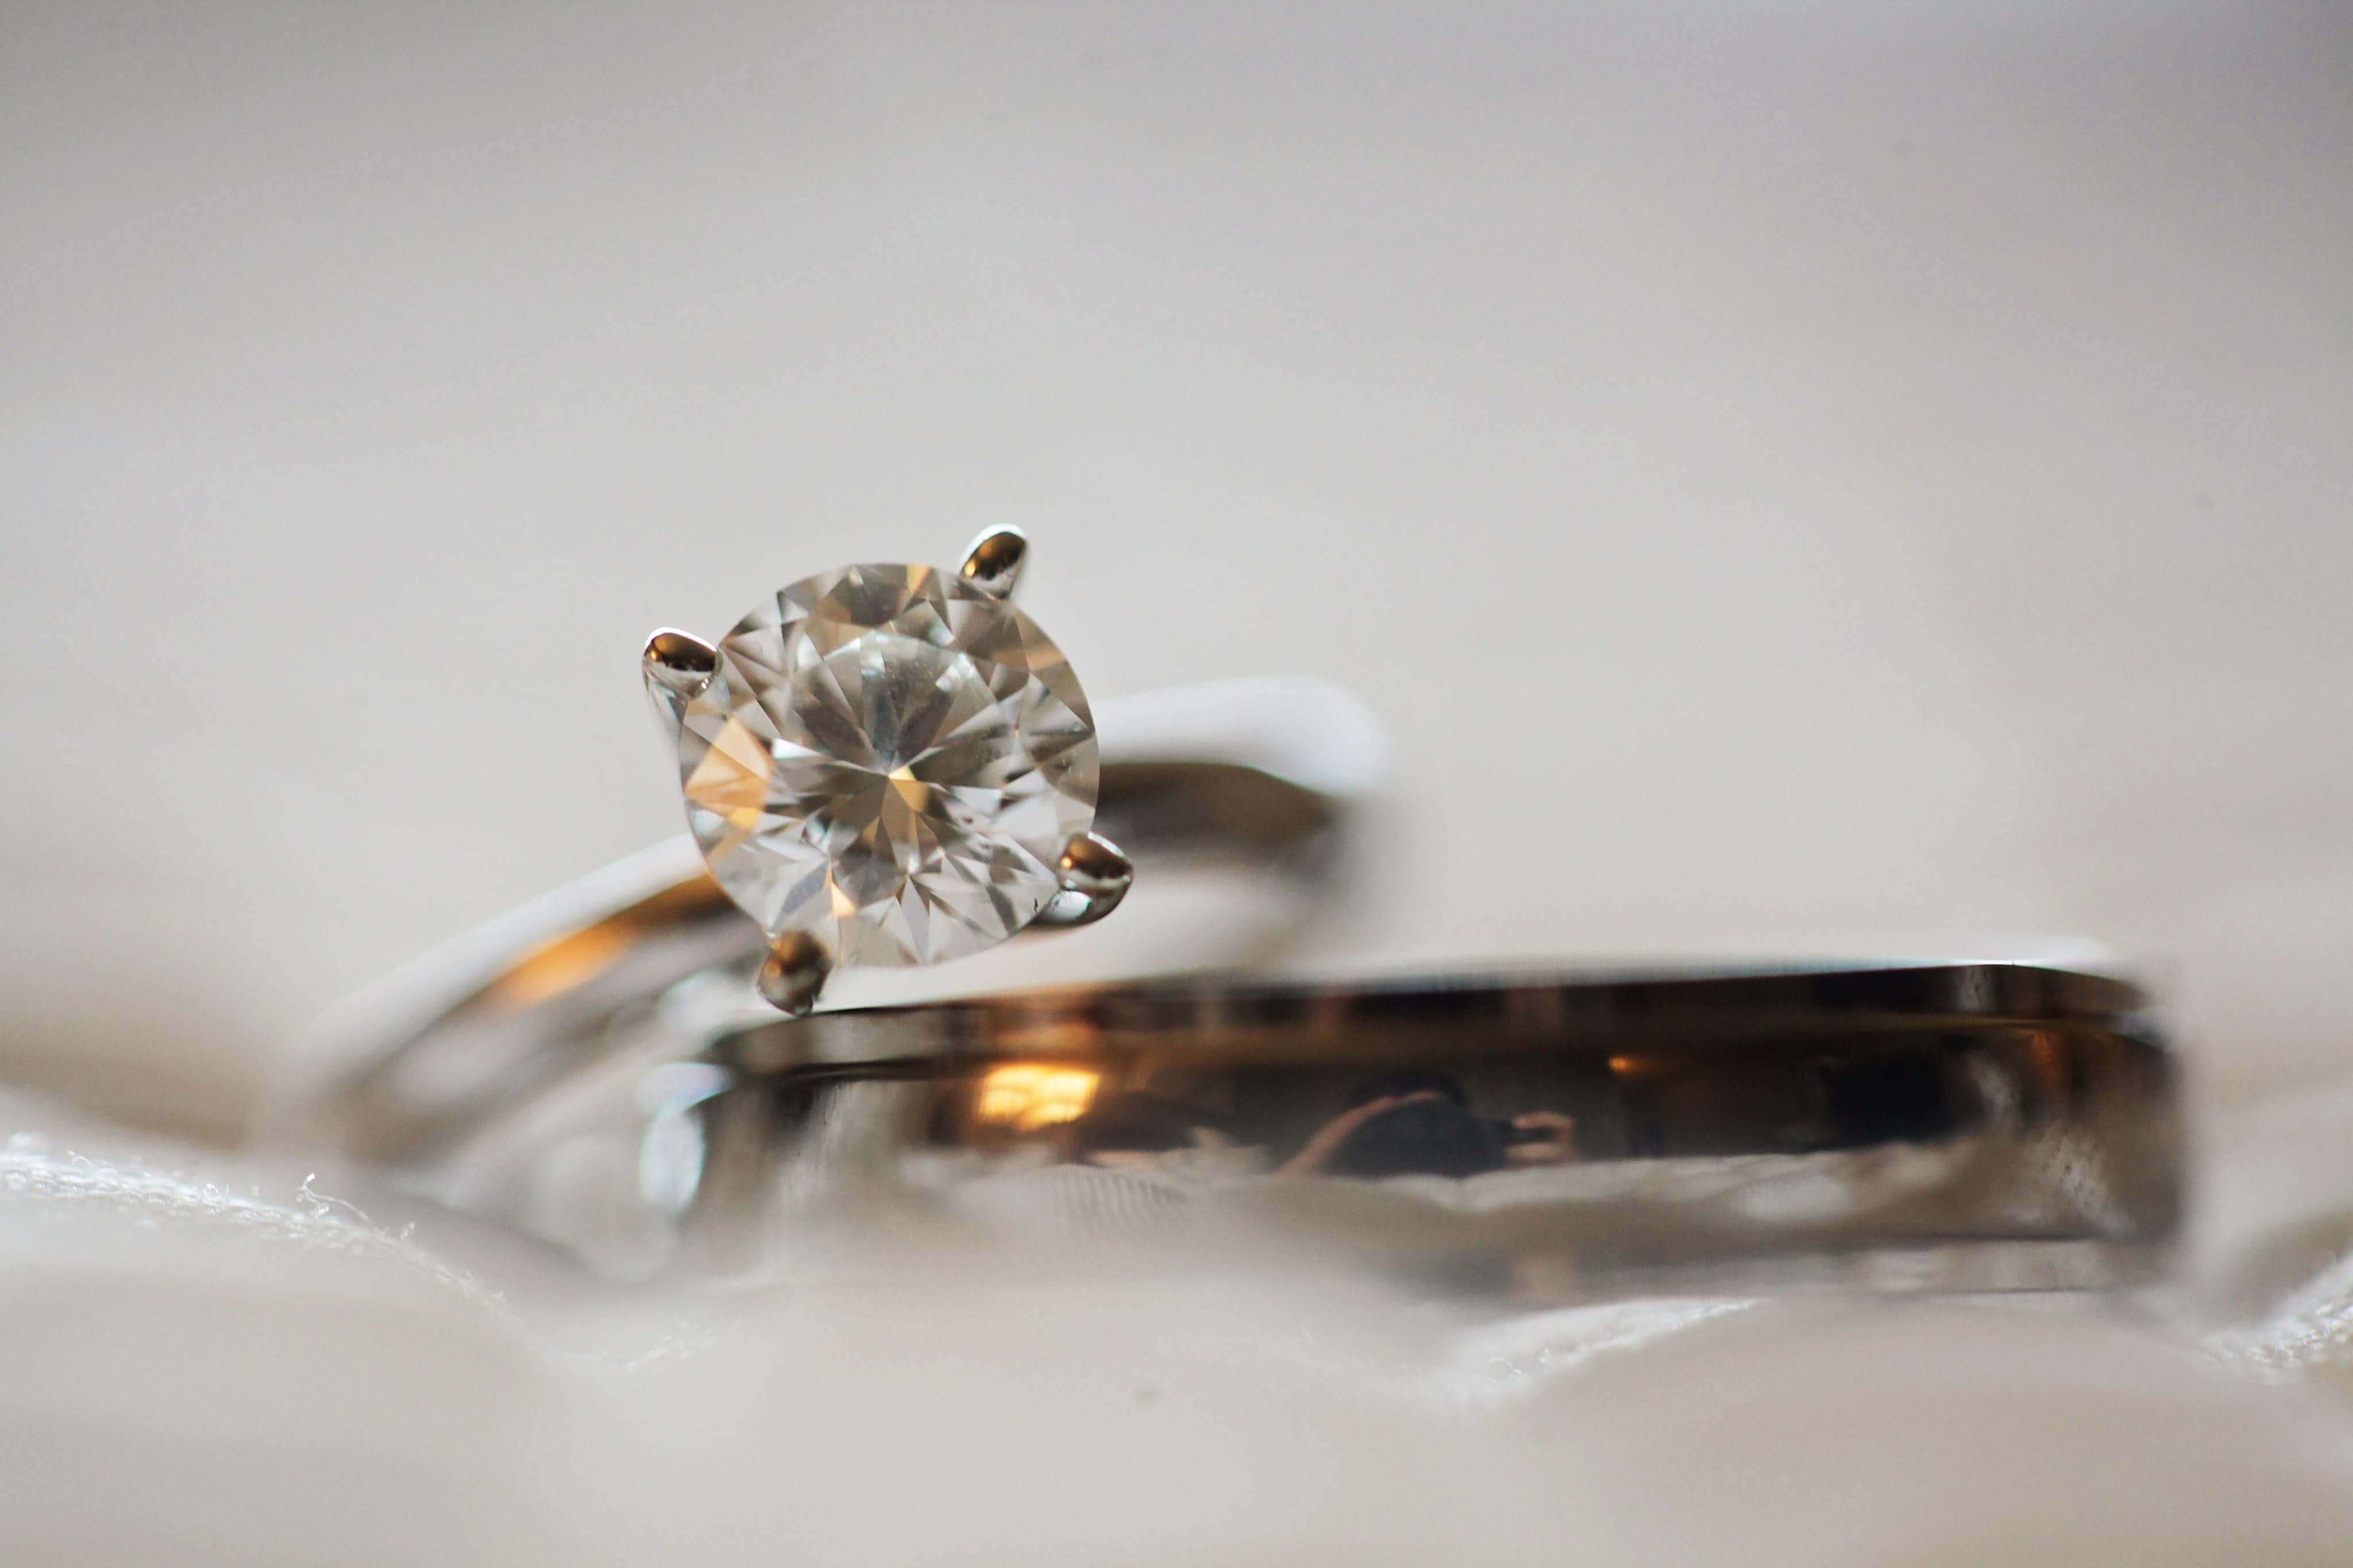 Wedding ring with diamond.   Source: Pexels/Leah